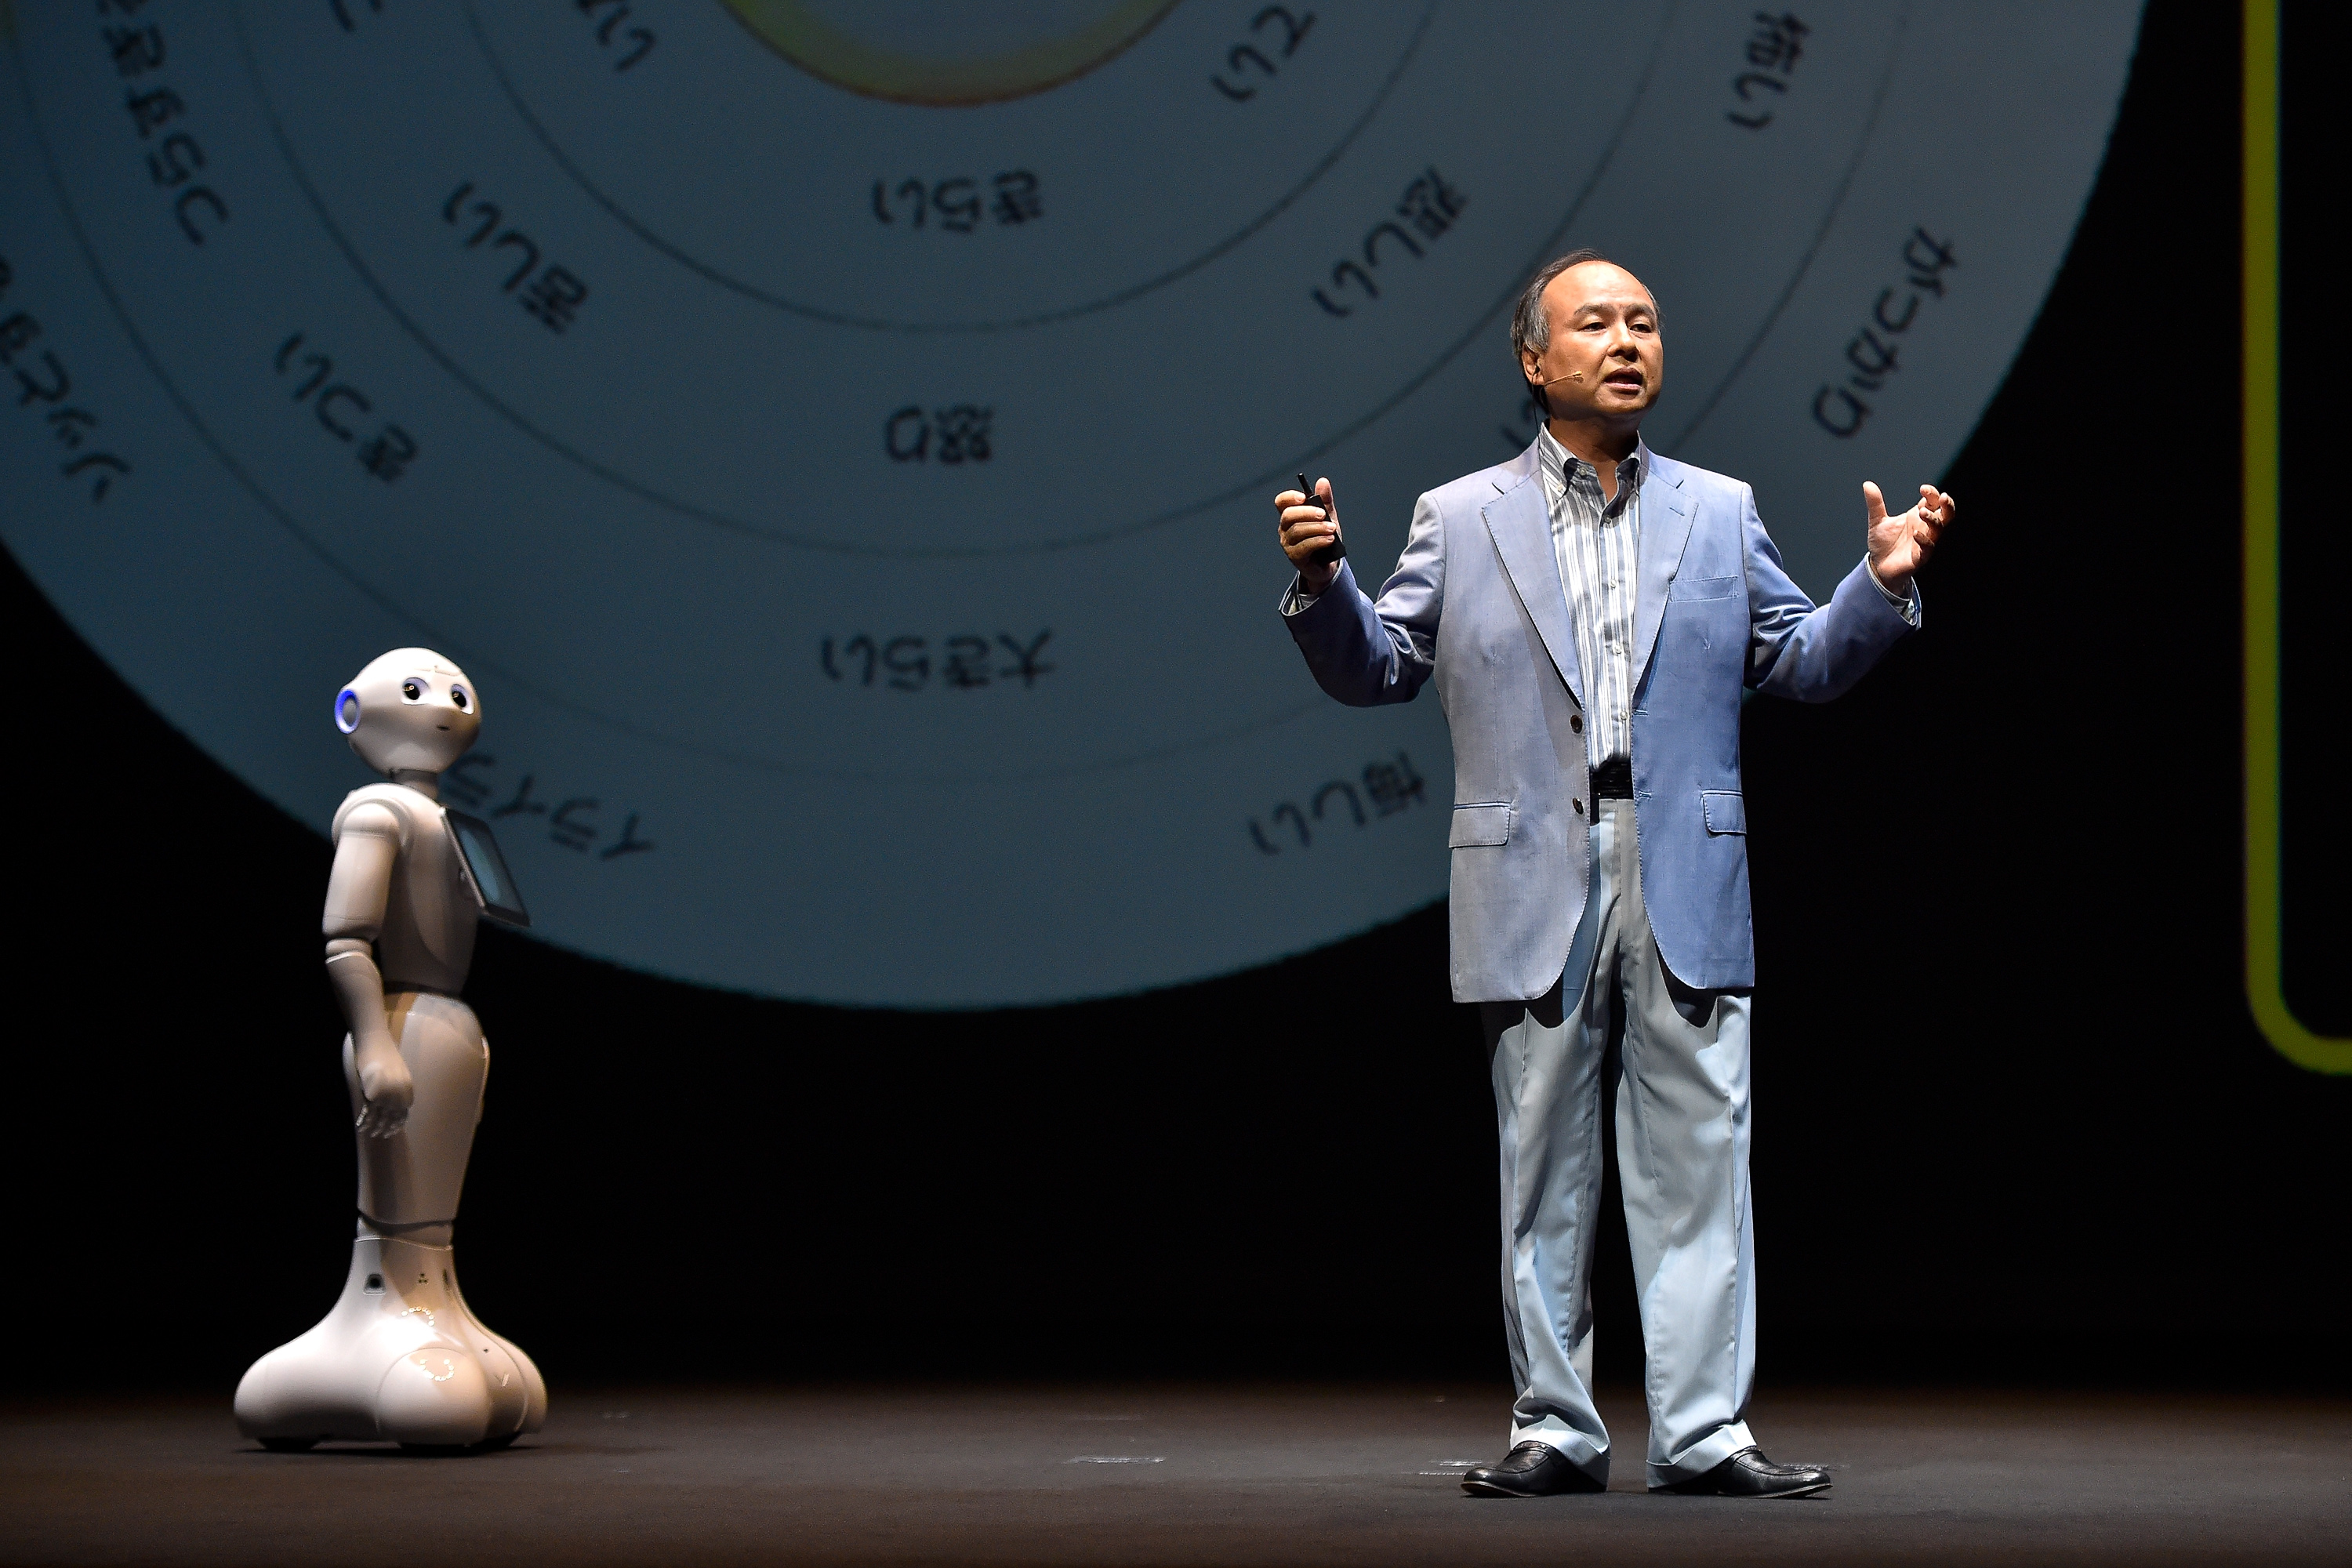 SoftBank CEO Masayoshi Son onstage with the Pepper robot